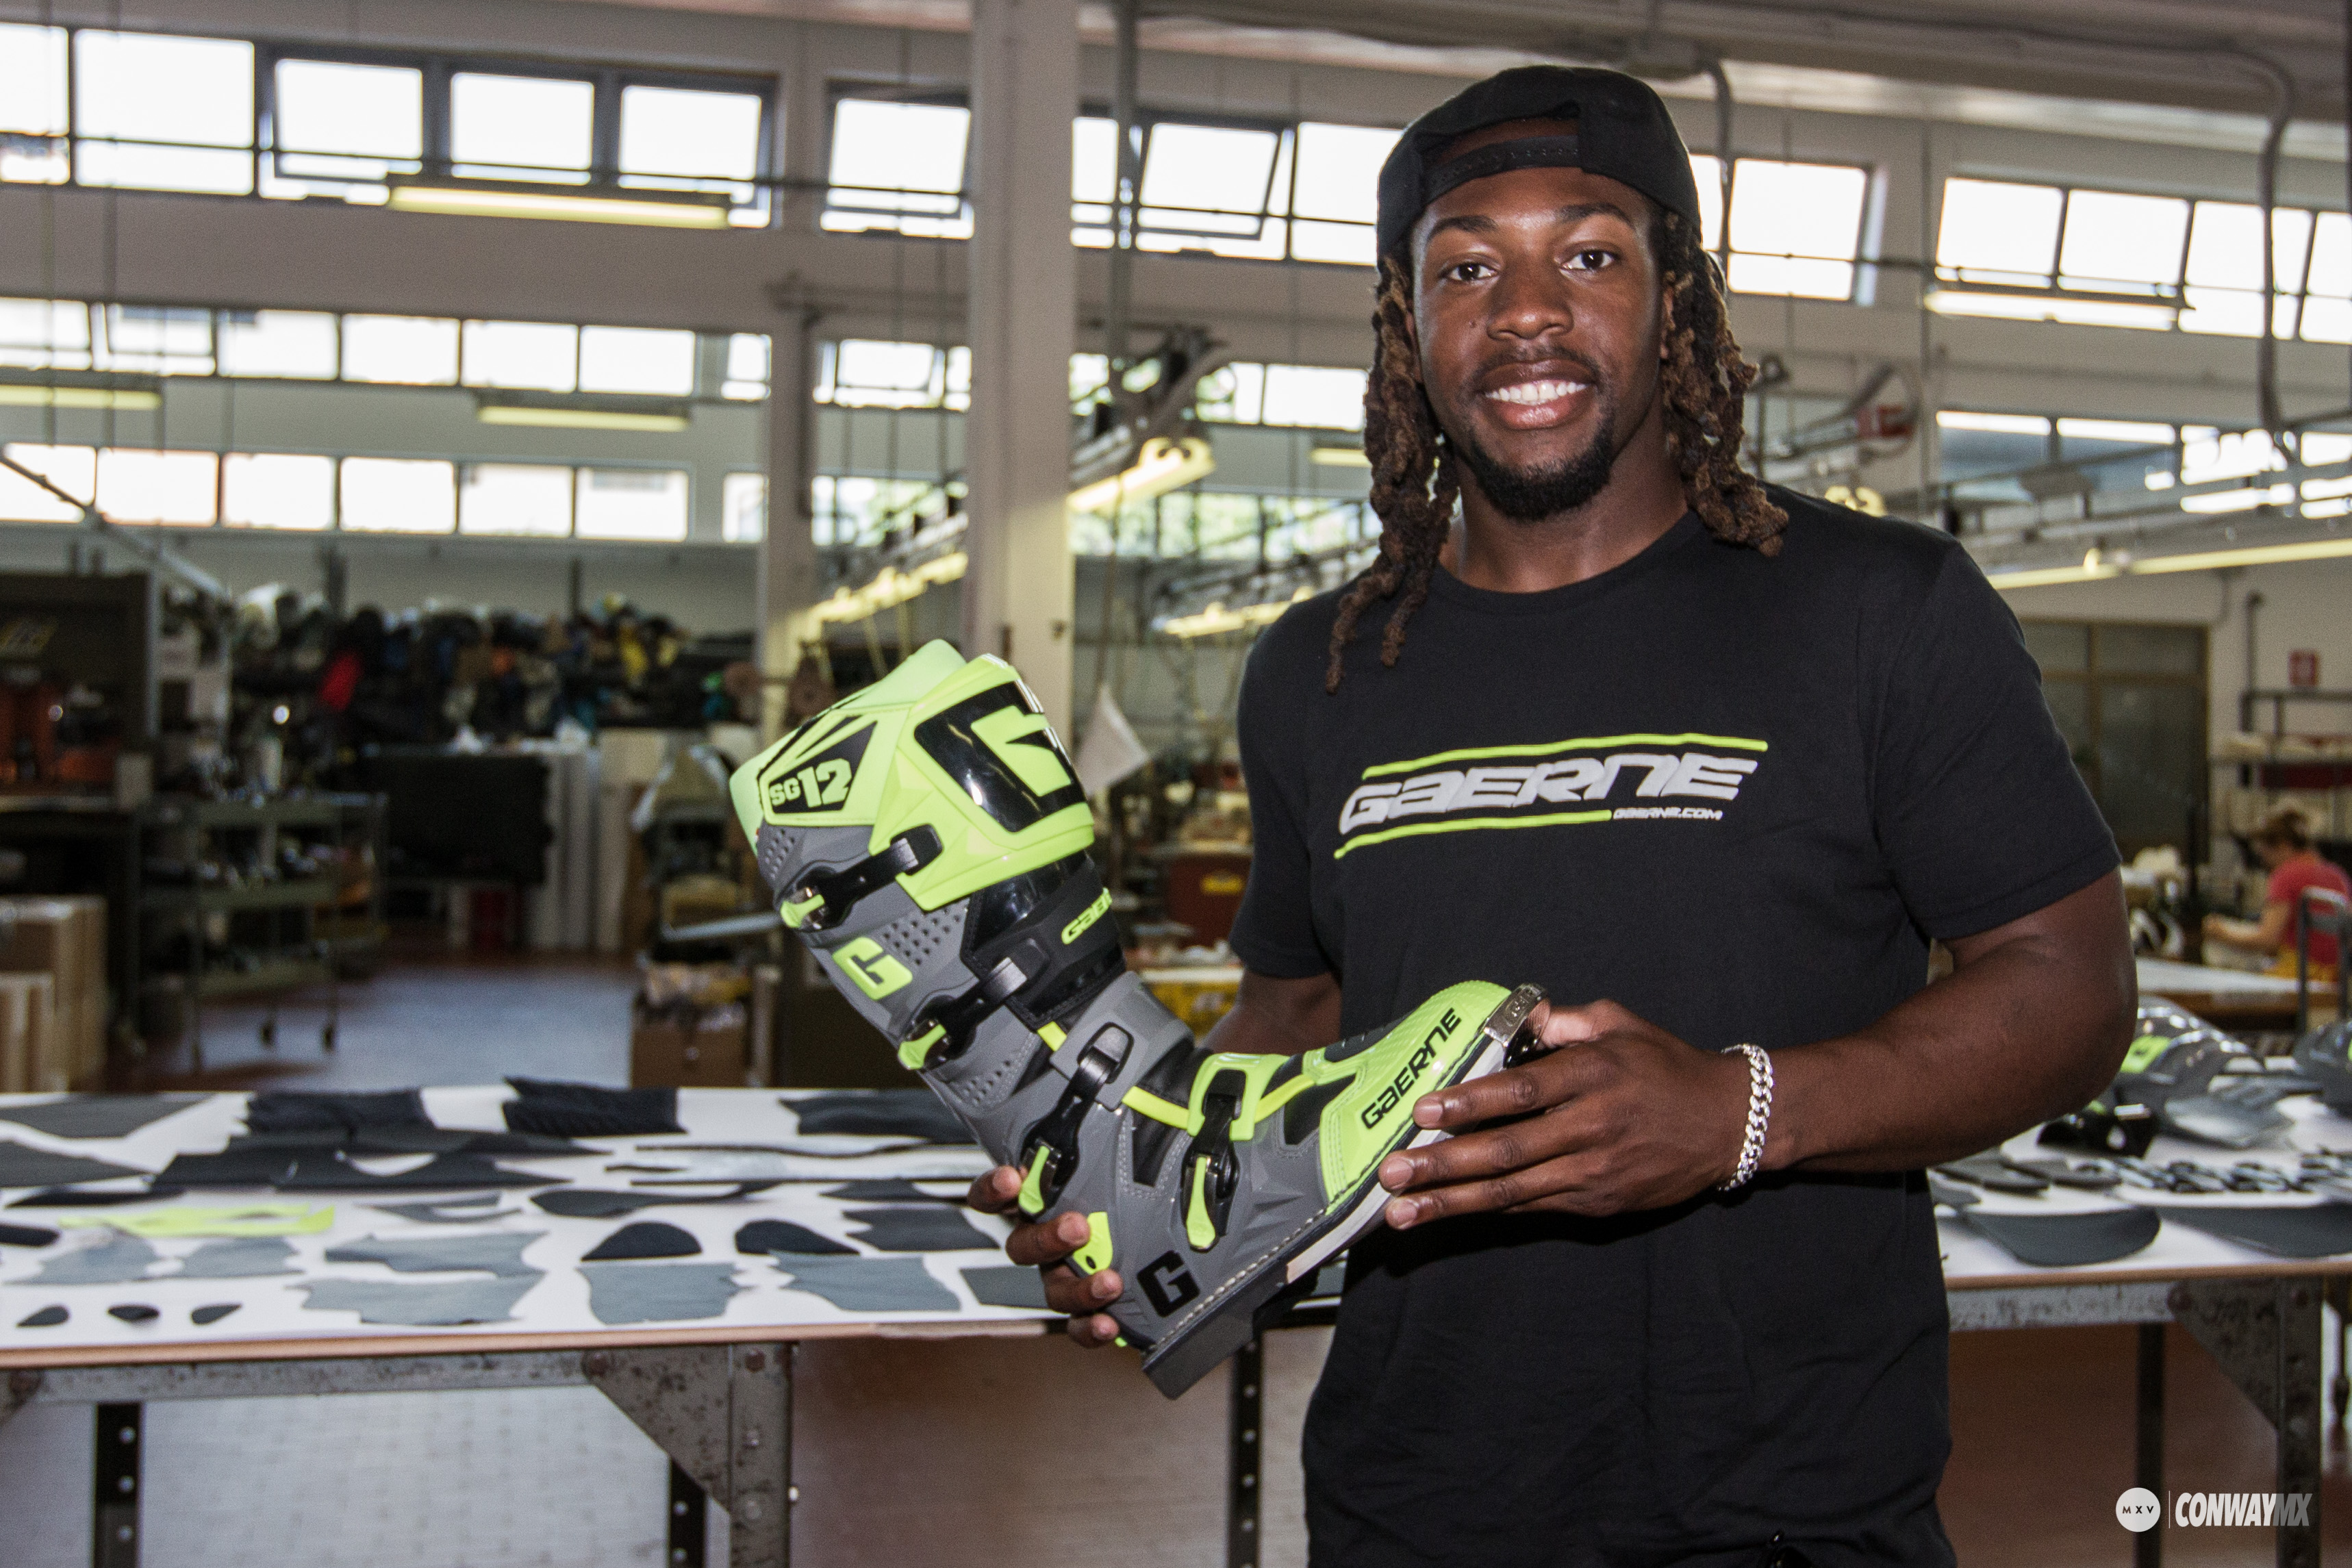 Gaerne athlete Malcolm Stewart with the Fluo Yellow SG-12 boot.